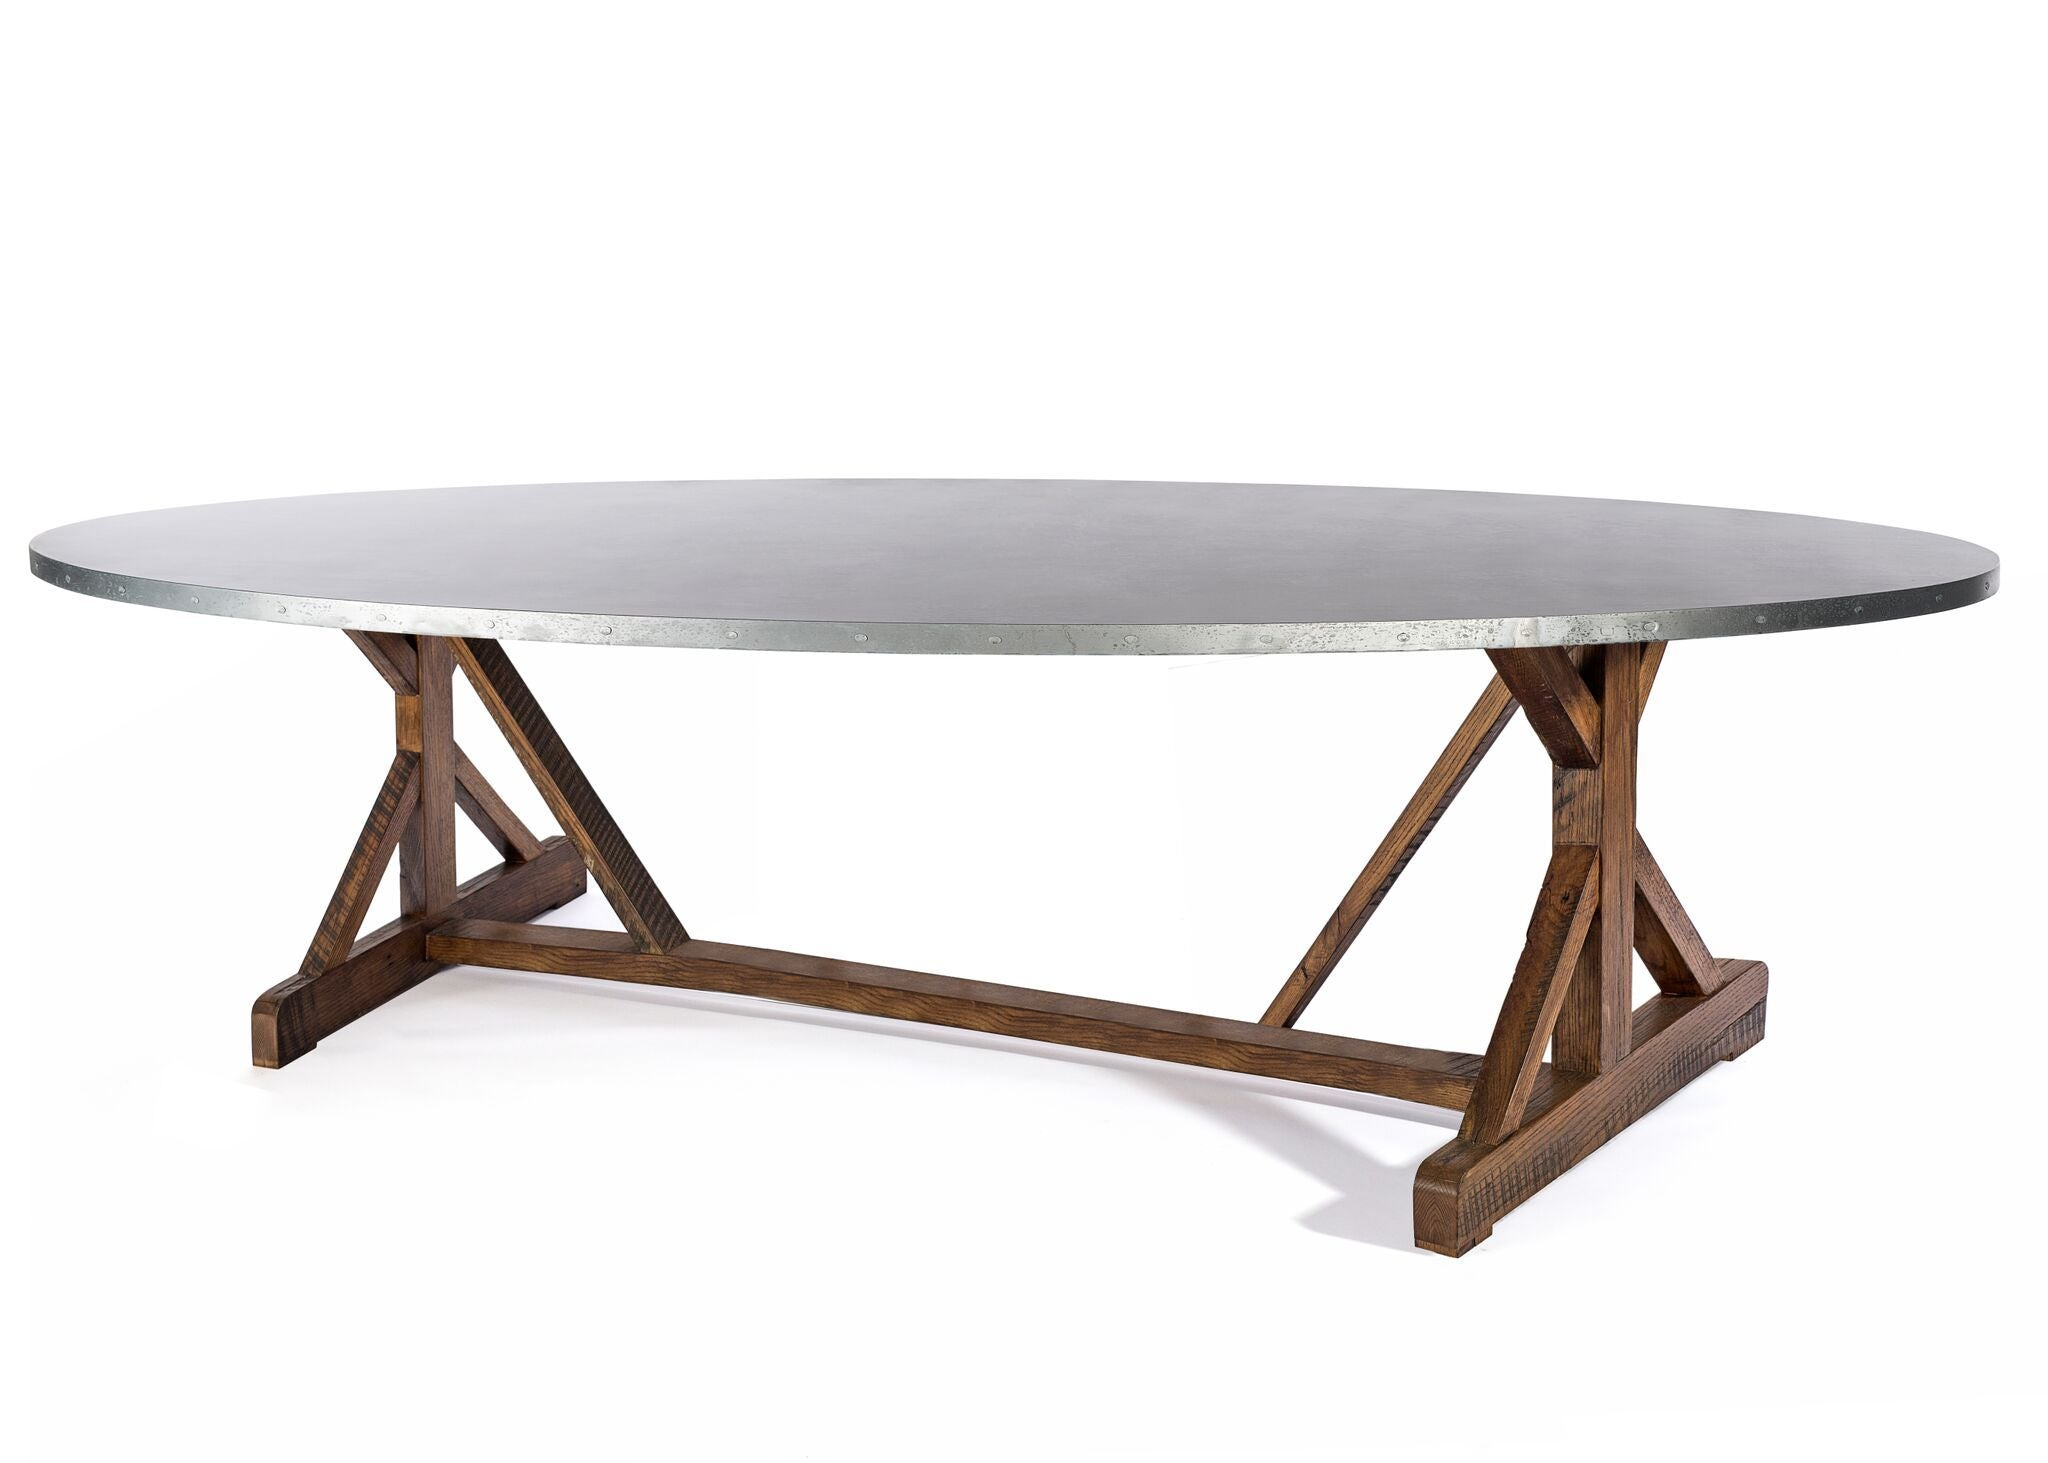 Zinc Oval Tables | Winston | BLACKENED BRONZE | Natural Ash | CUSTOM SIZE L 60.00 W 39.00 H 30.00 |